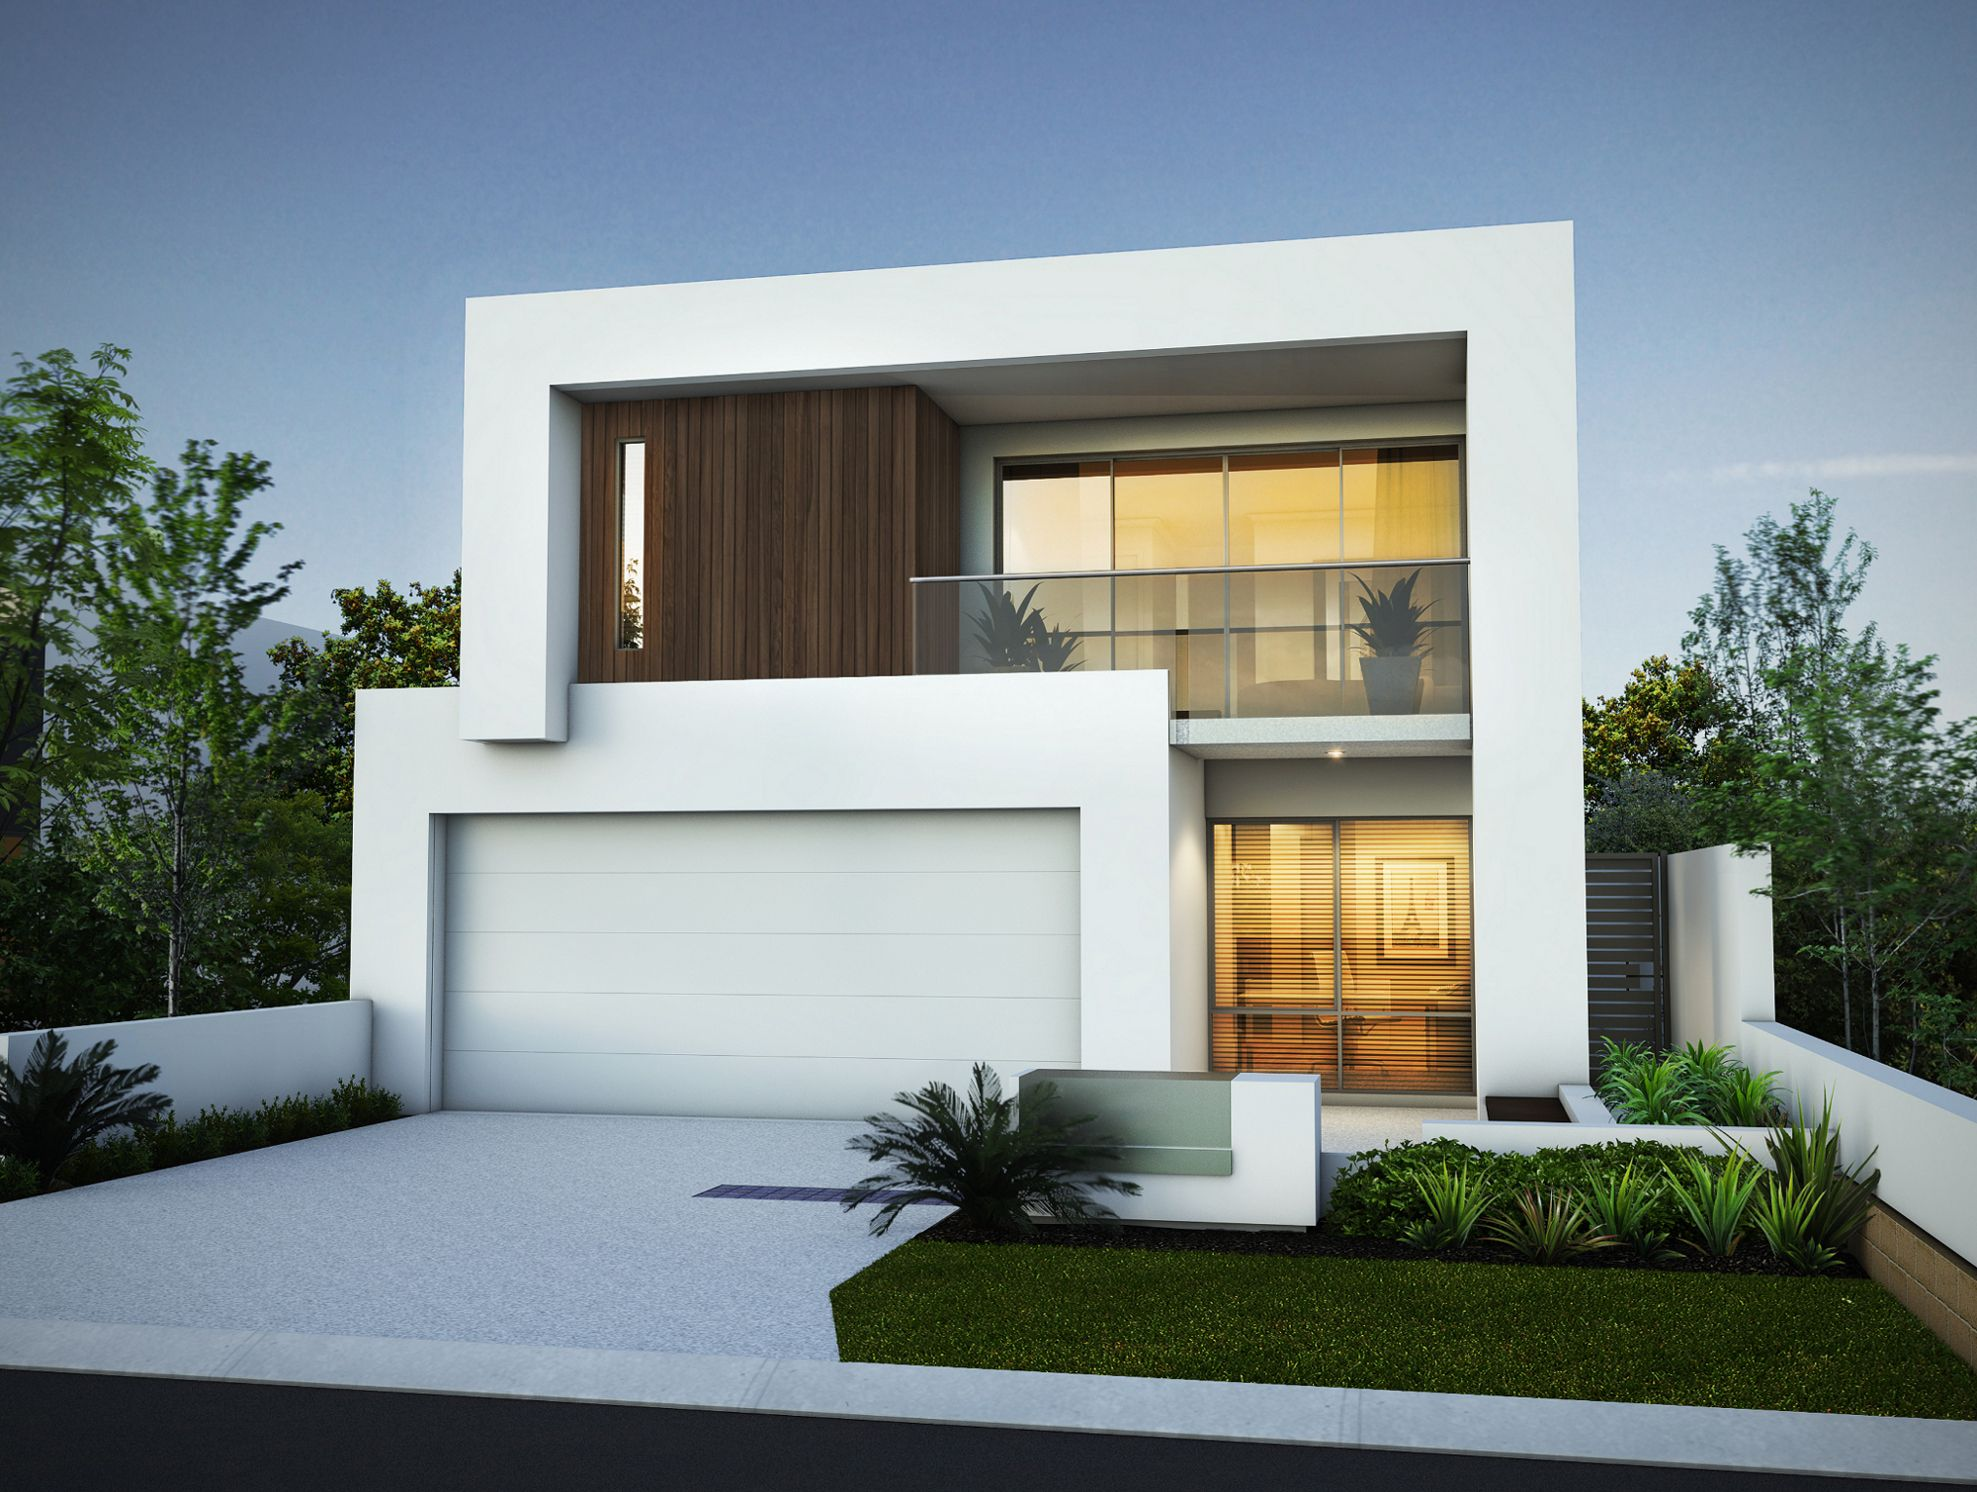 Modern house design for 200 square meter lot for Modern square house